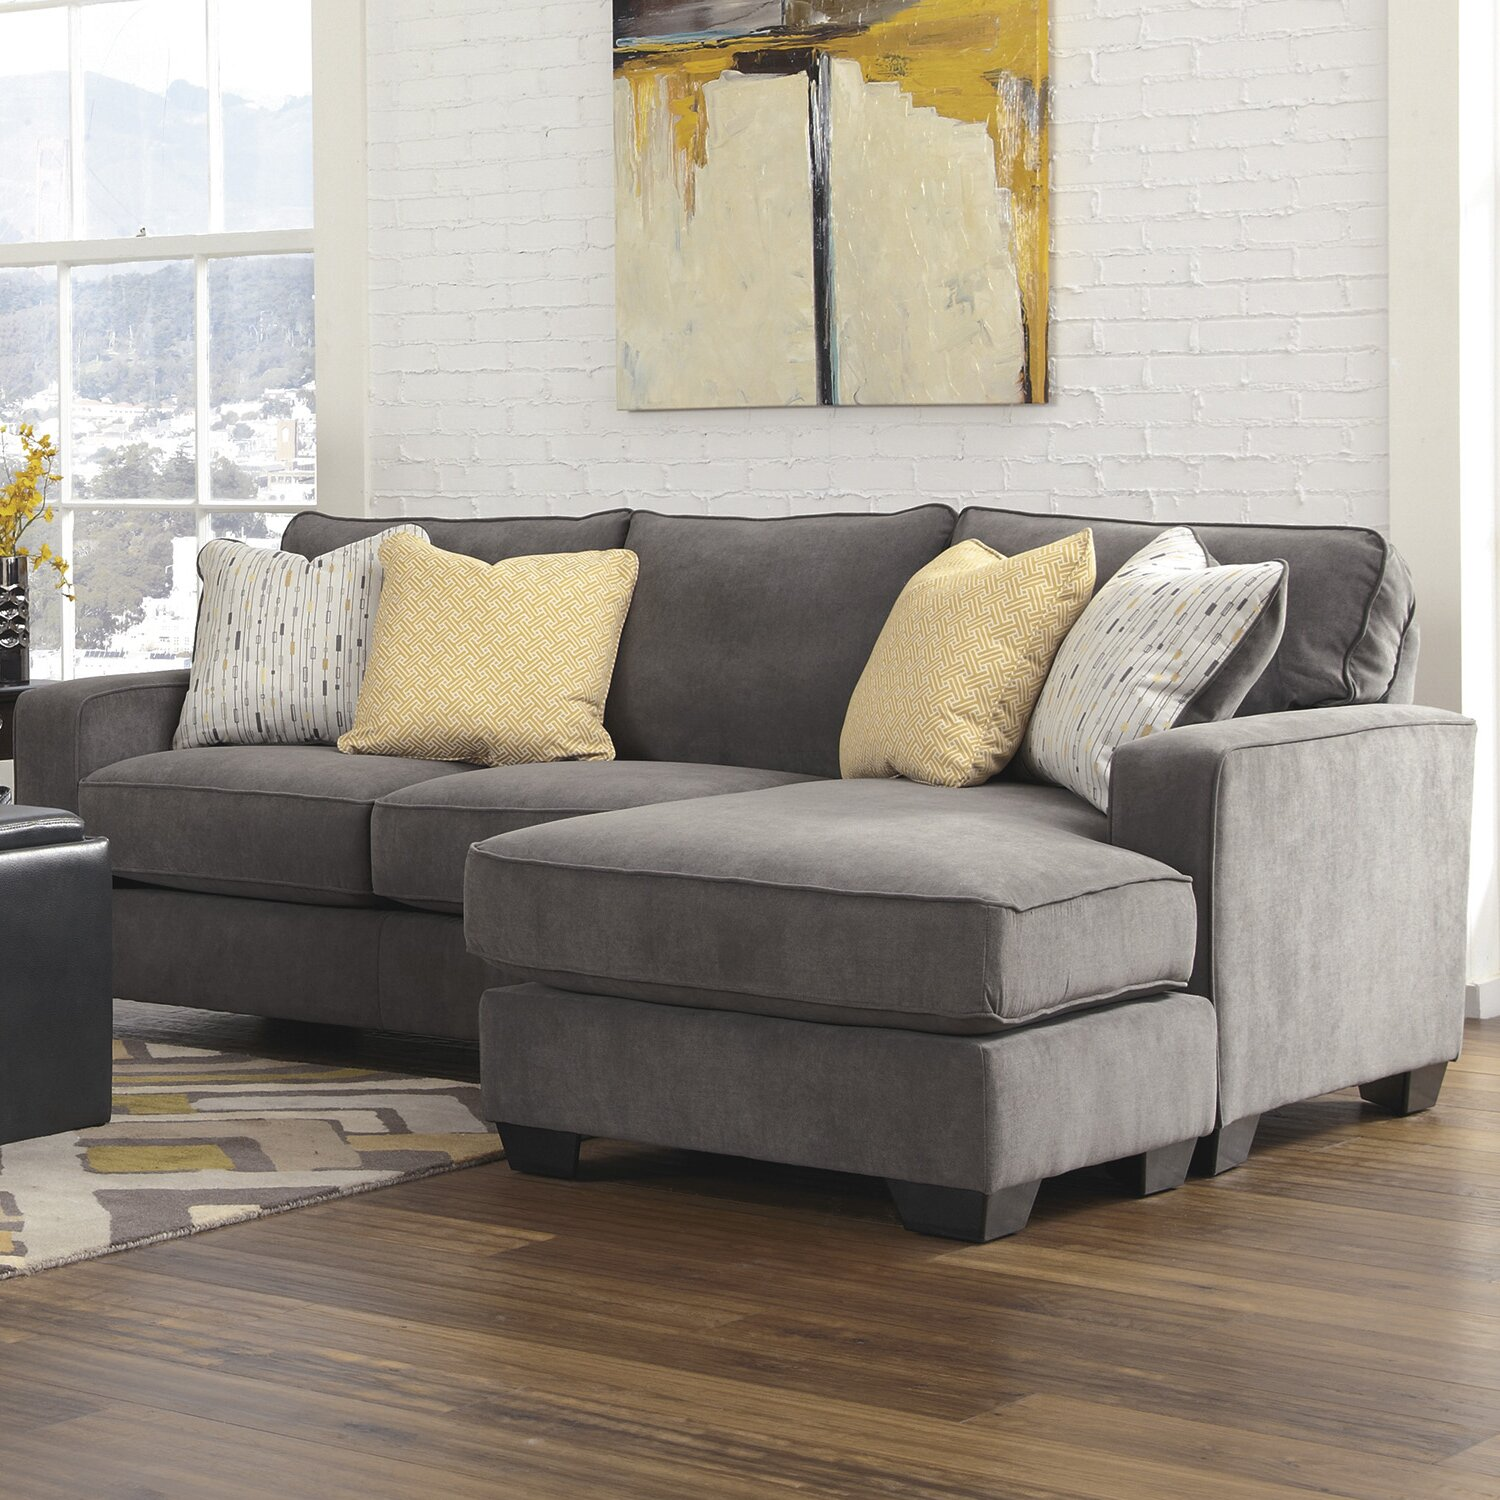 Mercer41 Kessel Reversible Chaise Sectional MRCR7110